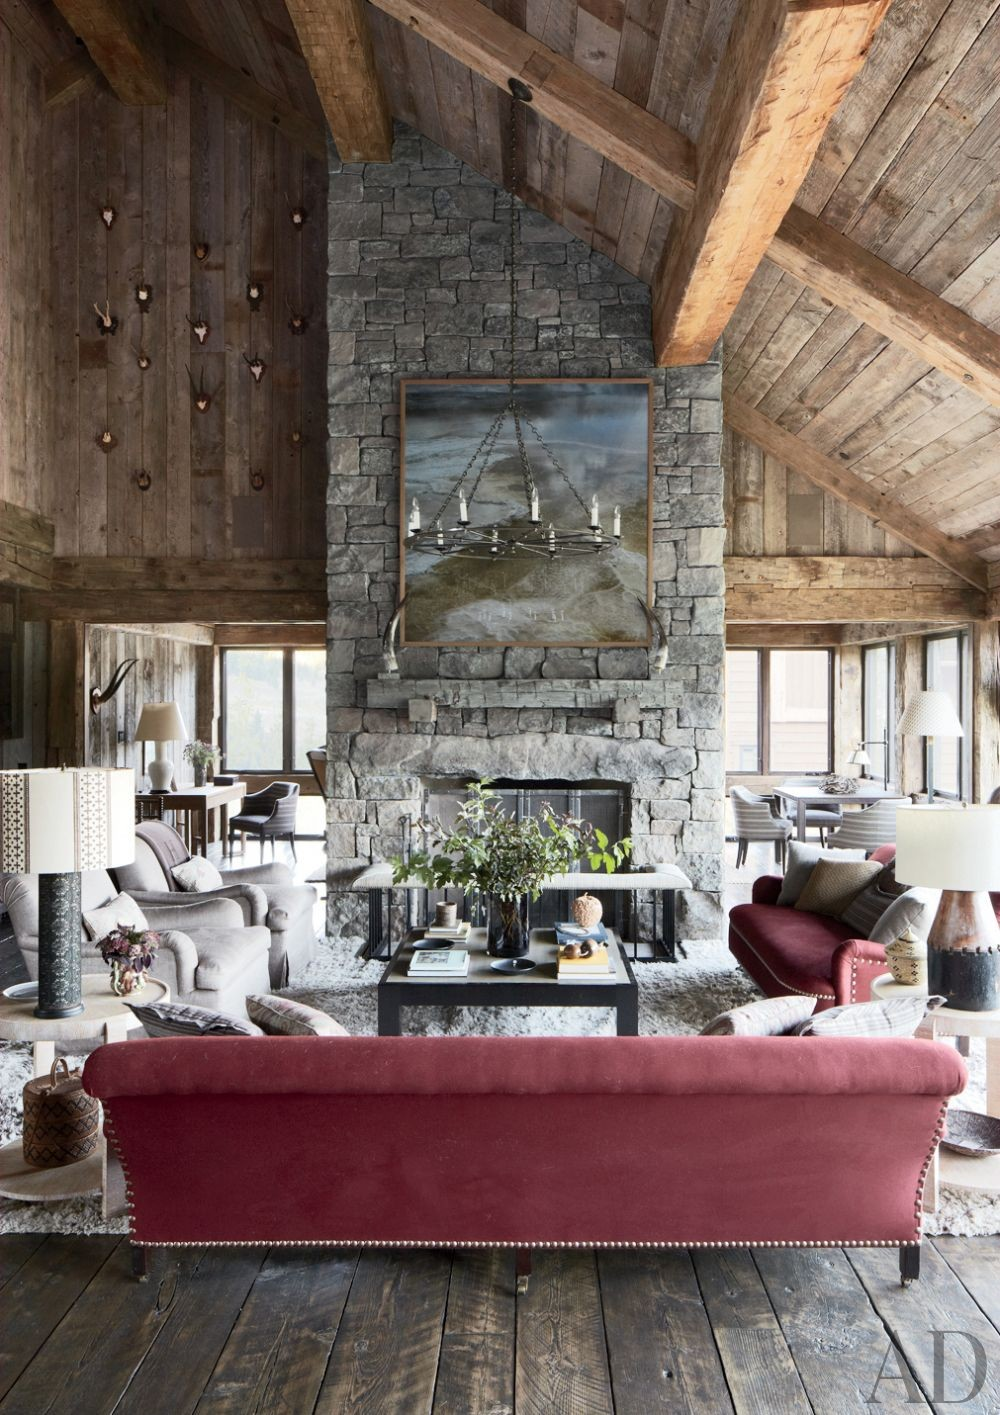 Rustic Living Room by Markham Roberts Inc. and JLF & Associates Inc. in Big Sky, Montana